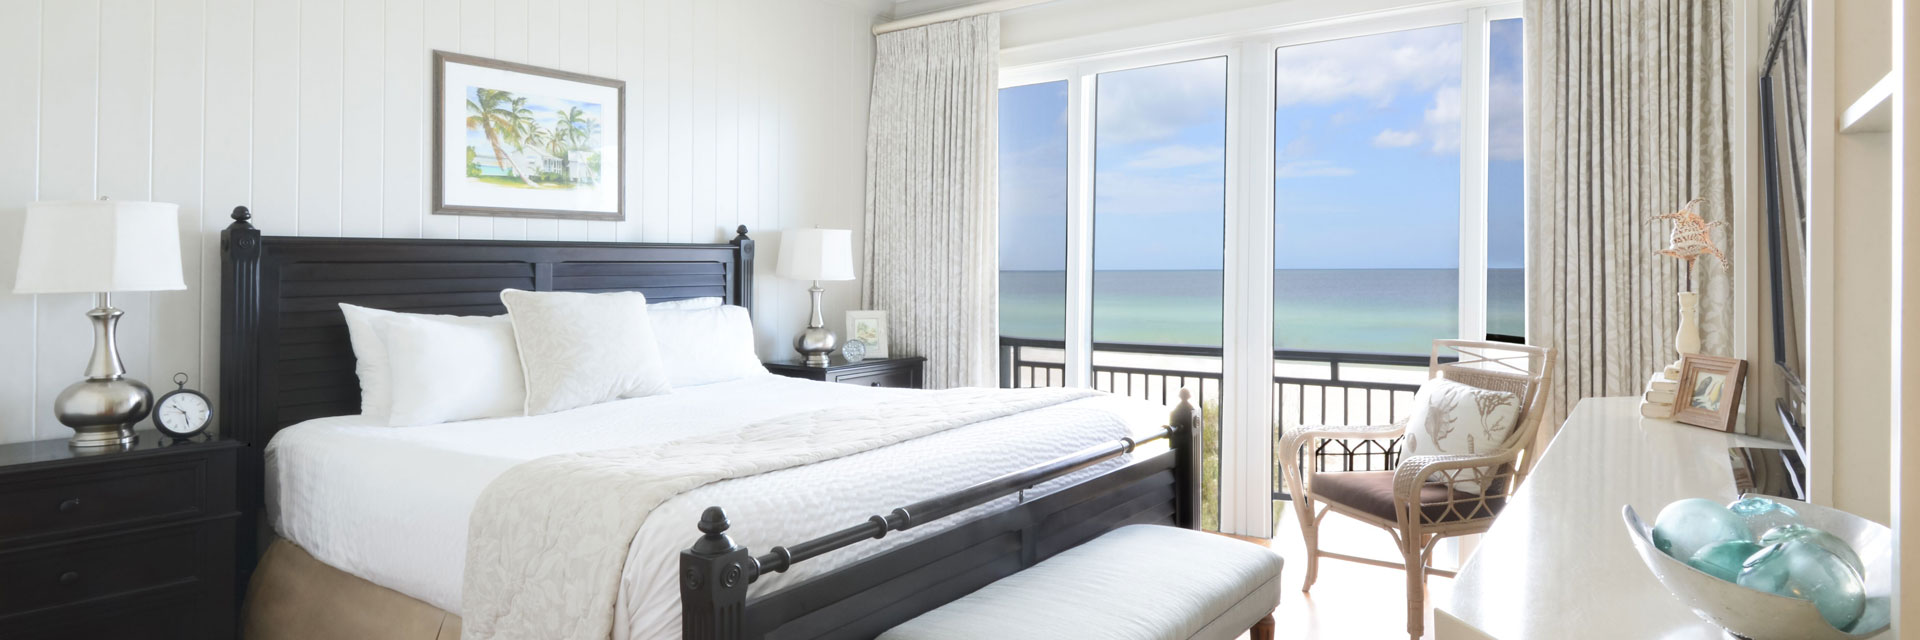 King bed in a resort room overlooking the beach.